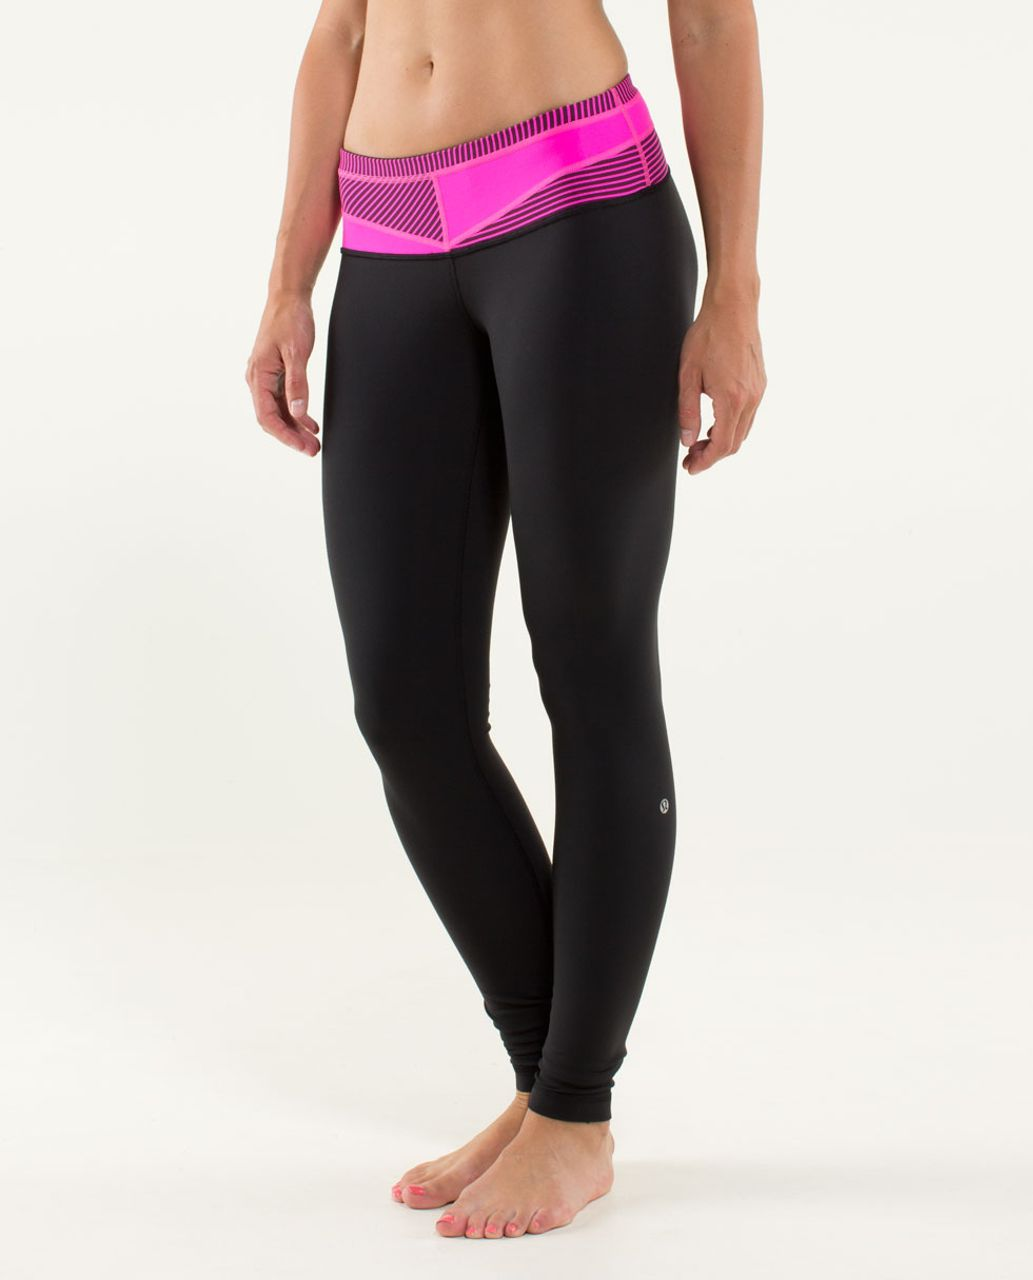 Lululemon Wunder Under Pant - Black / Quilt 06 Fall 2013